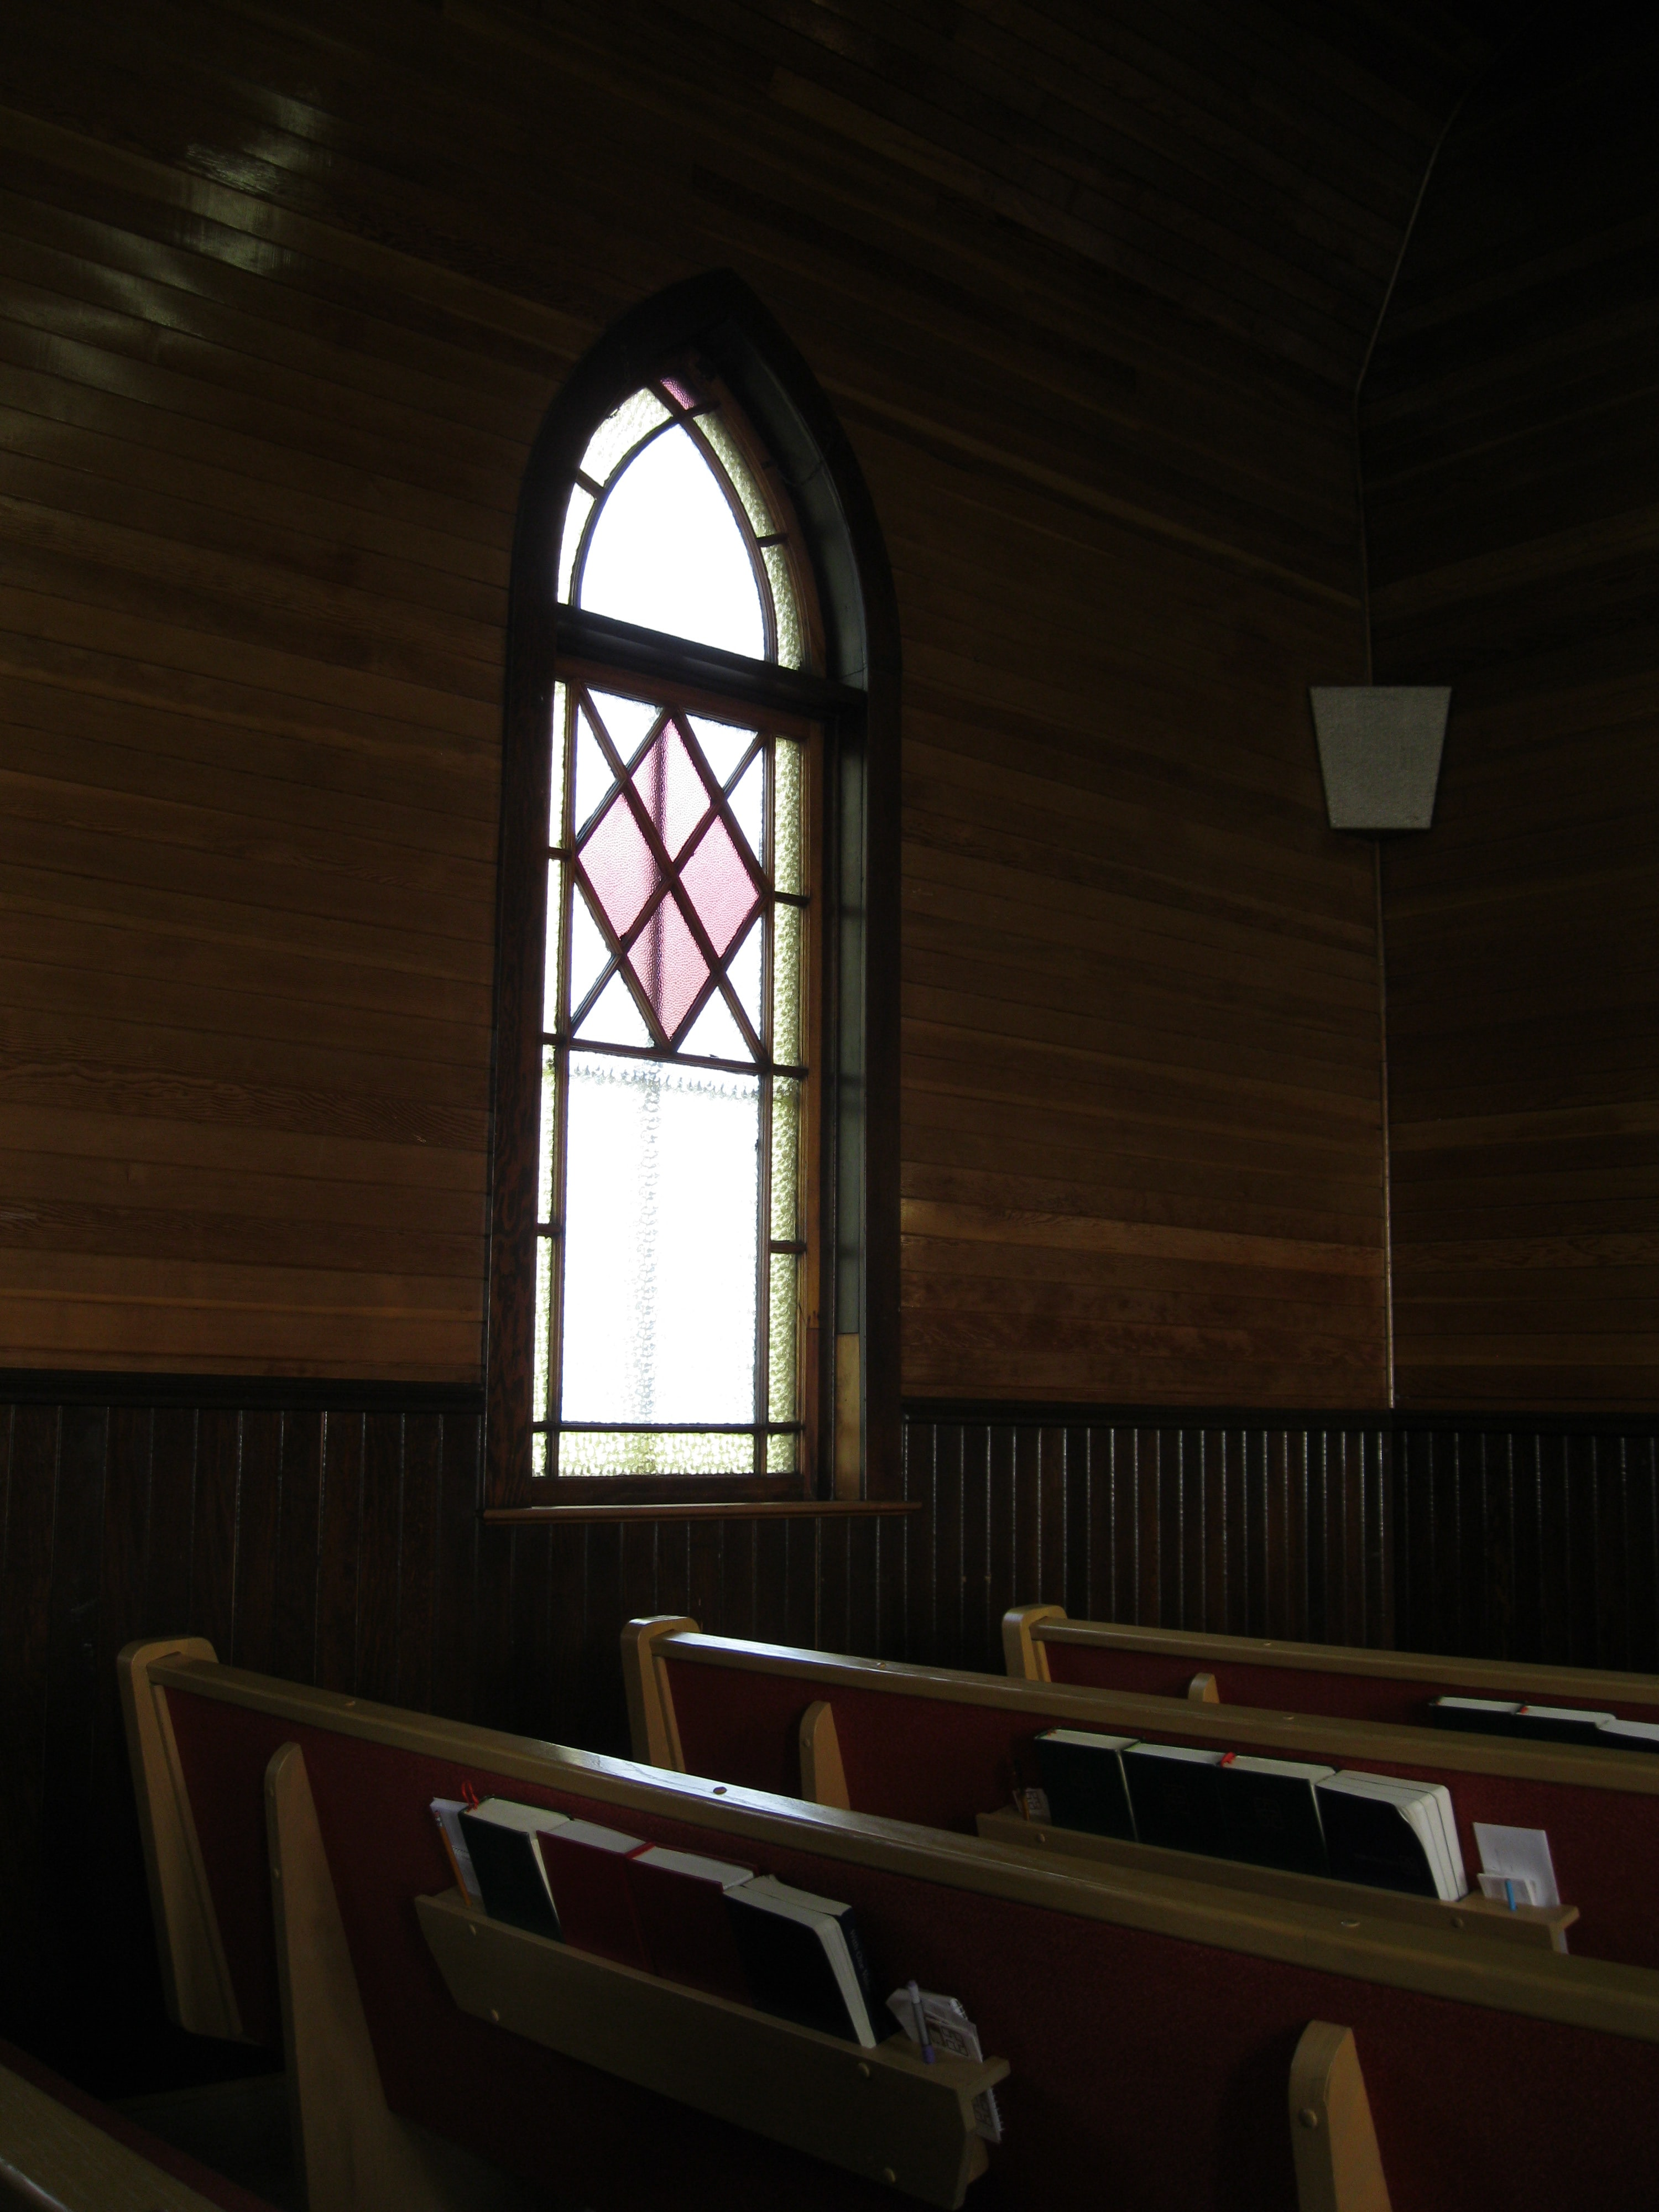 Basic light colored stained glass window, wooden interior, and pew with hymnbooks